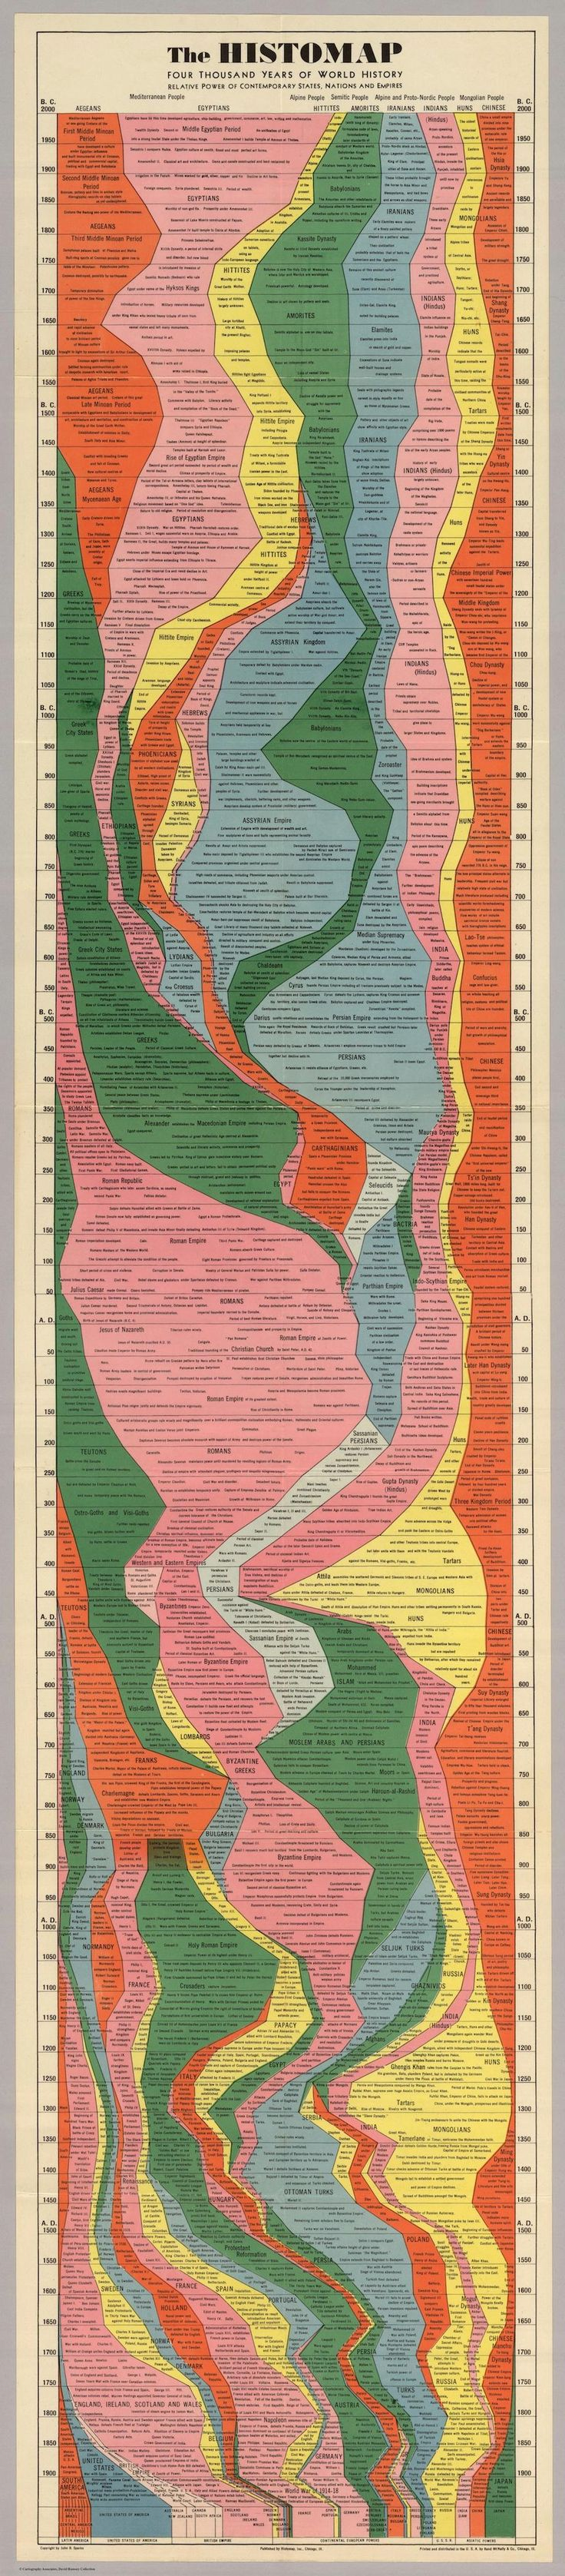 "This ""Histomap,"" created by John B. Sparks, was first printed by Rand McNally in 1931. (The David Rumsey Map Collection hosts a fully zoomable version.)"